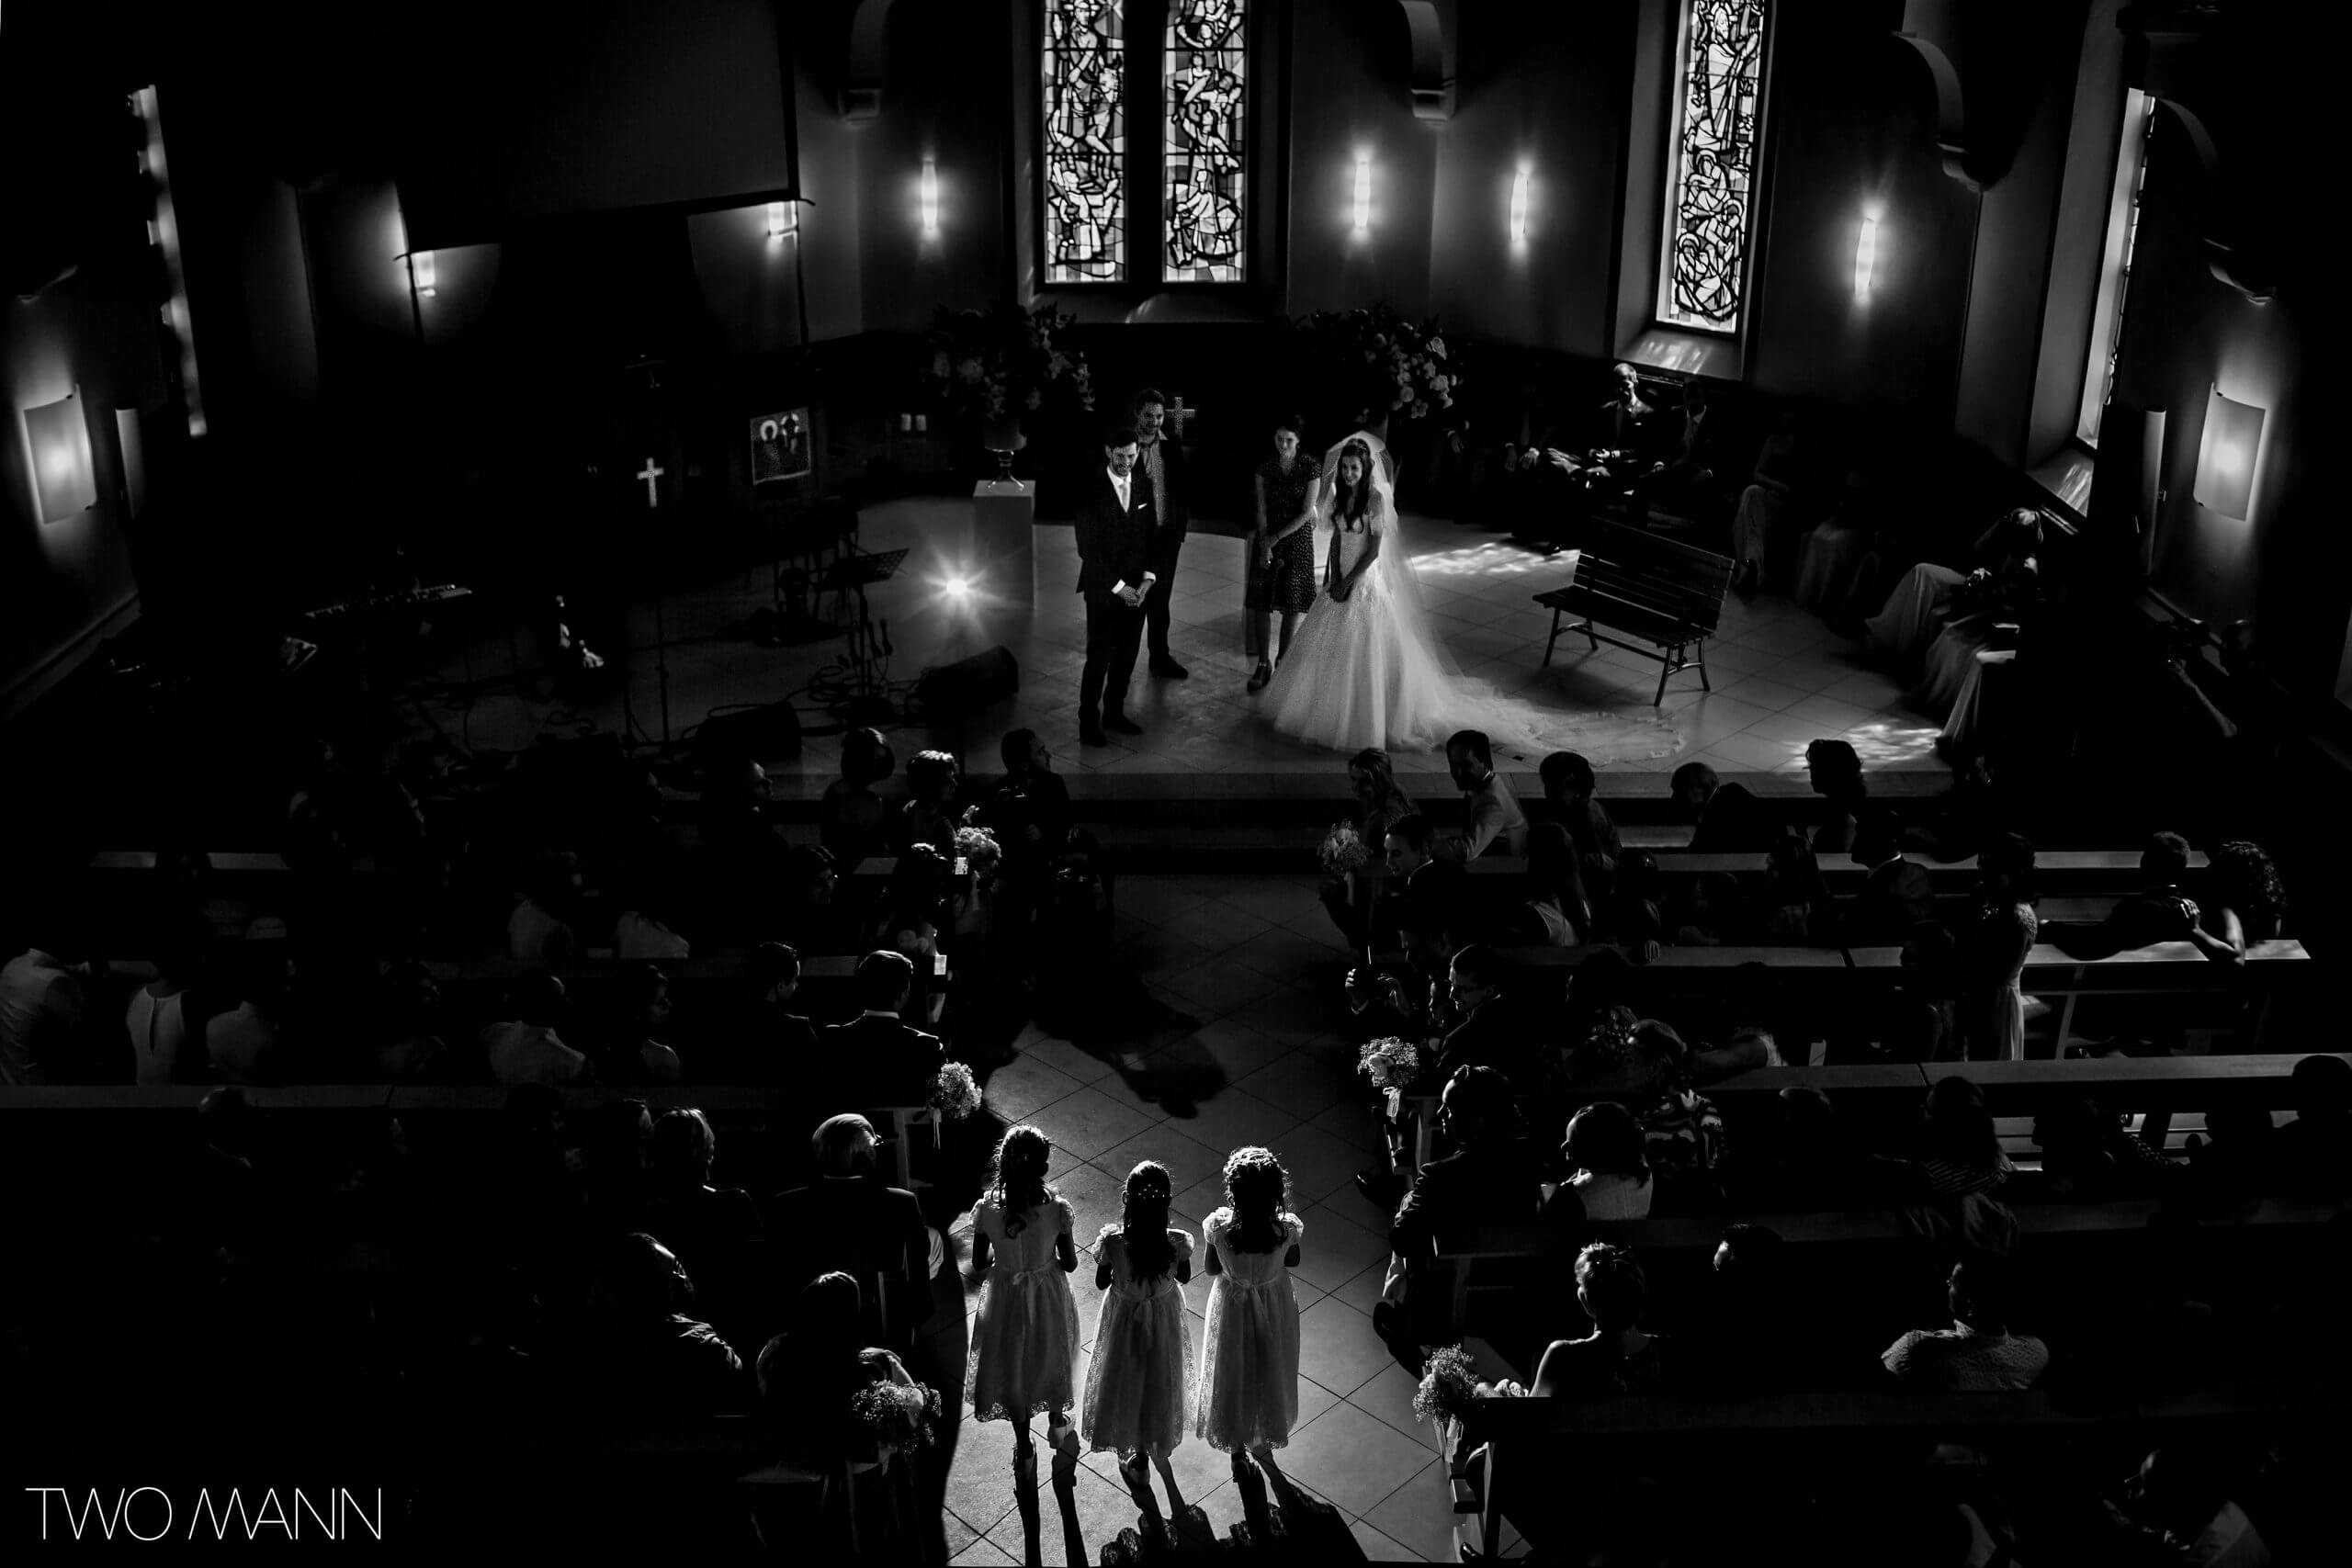 a wedding ceremony in a church